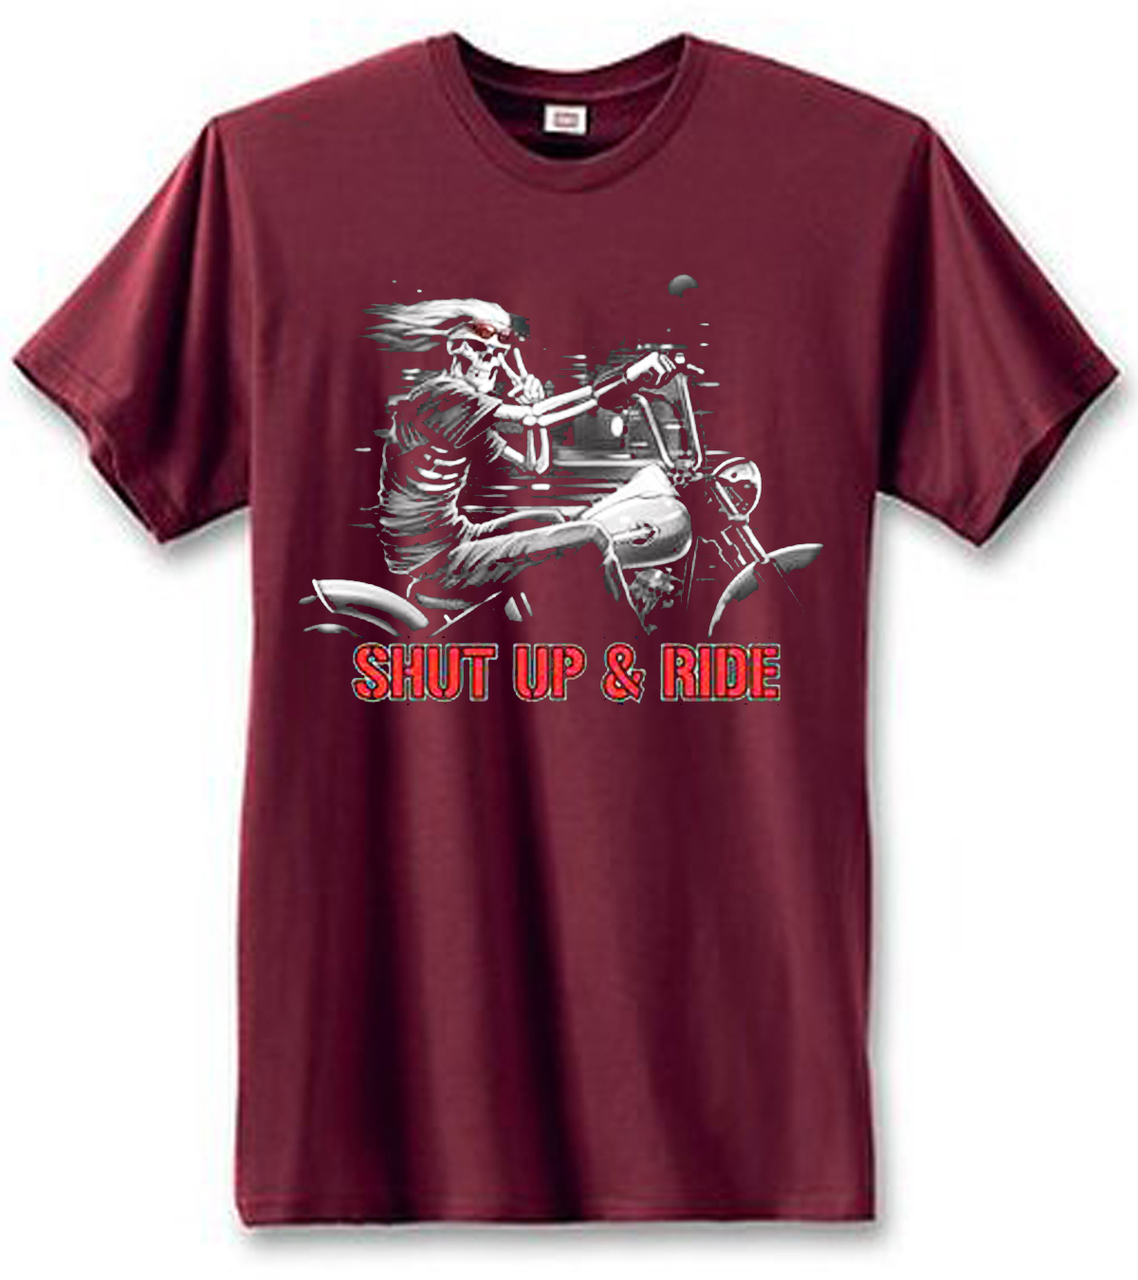 Shut Up & Ride Motorcycle Men's Short Sleeve T-Shirt